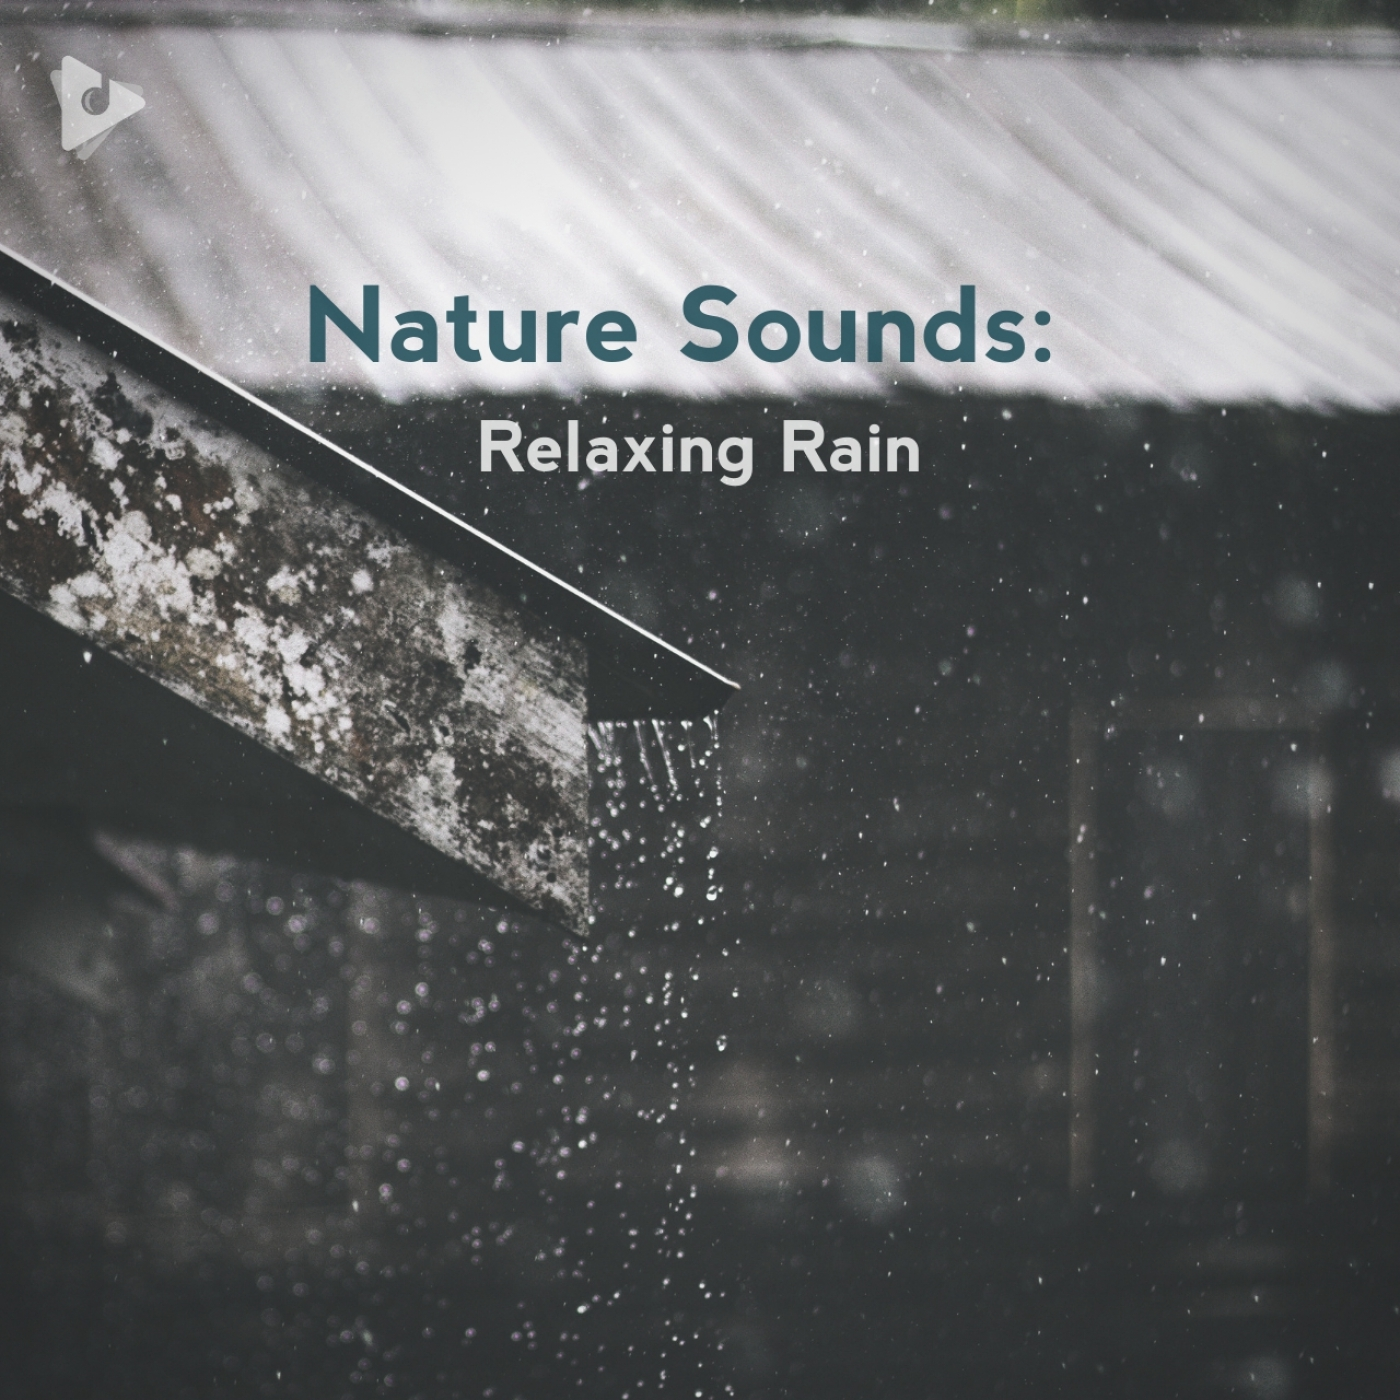 Nature Sounds: Relaxing Rain